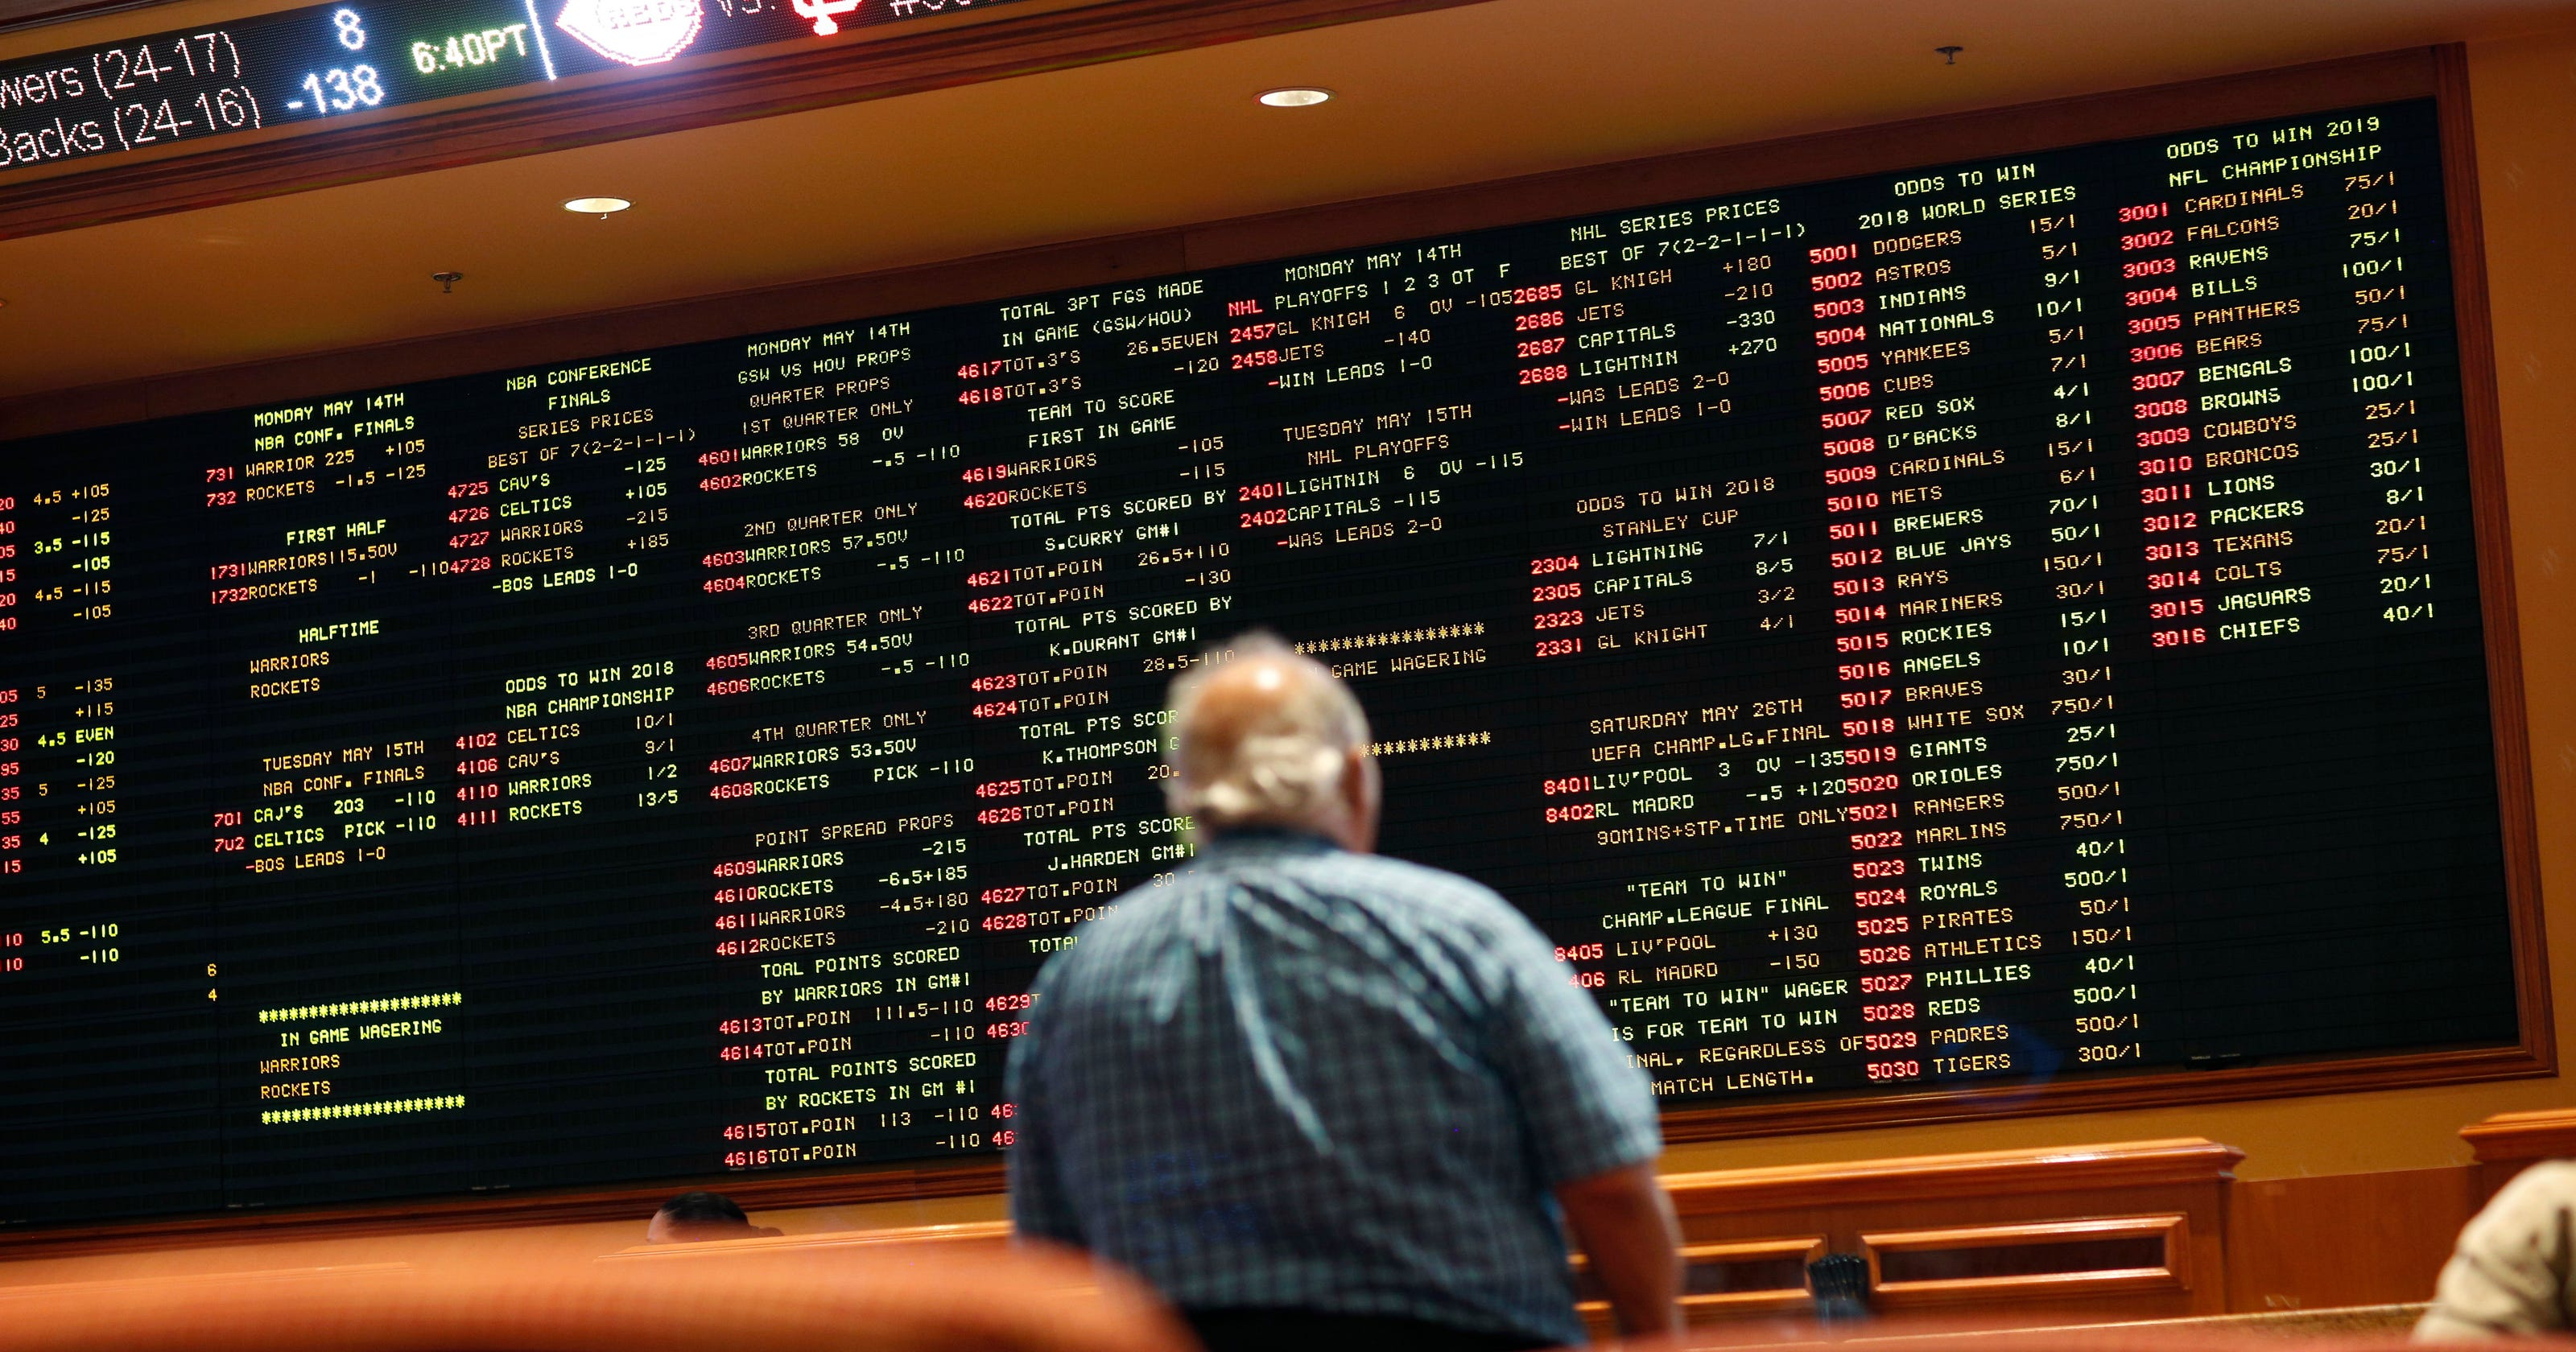 Gambling: Mississippi casinos to have sports bets